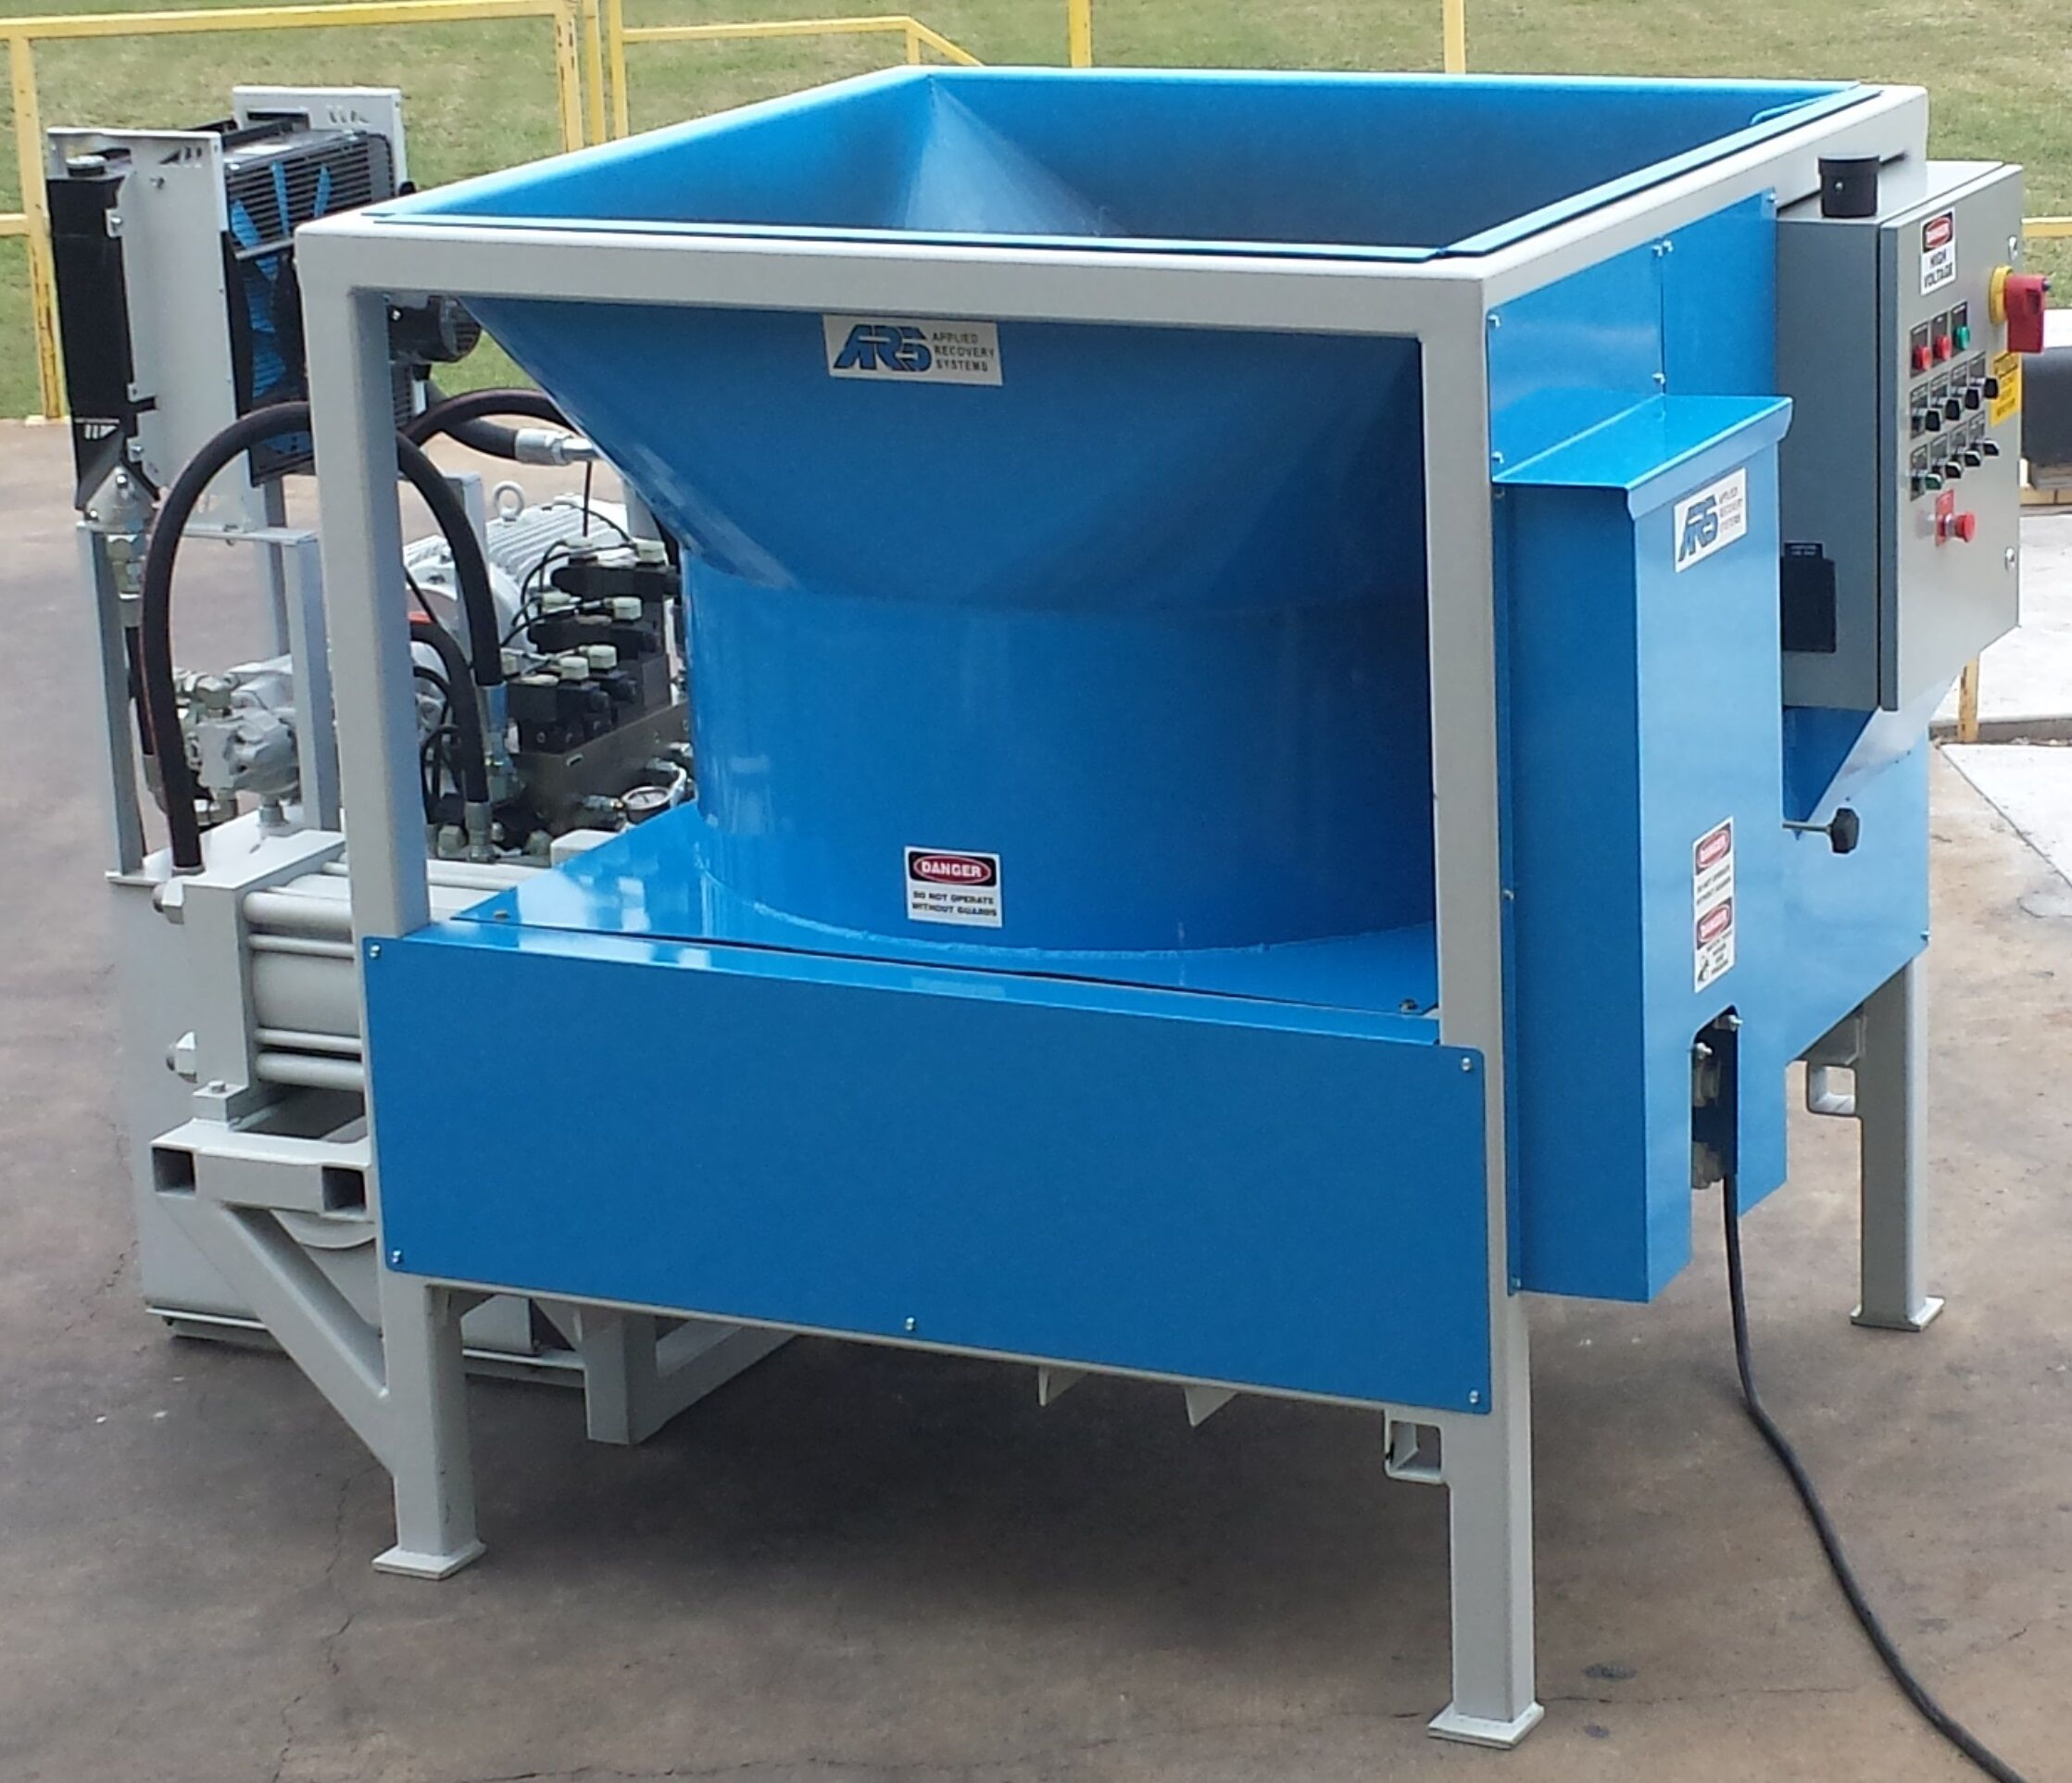 Whitey S Metal Recycling Home: Metal Compactors For Scrap Recovery